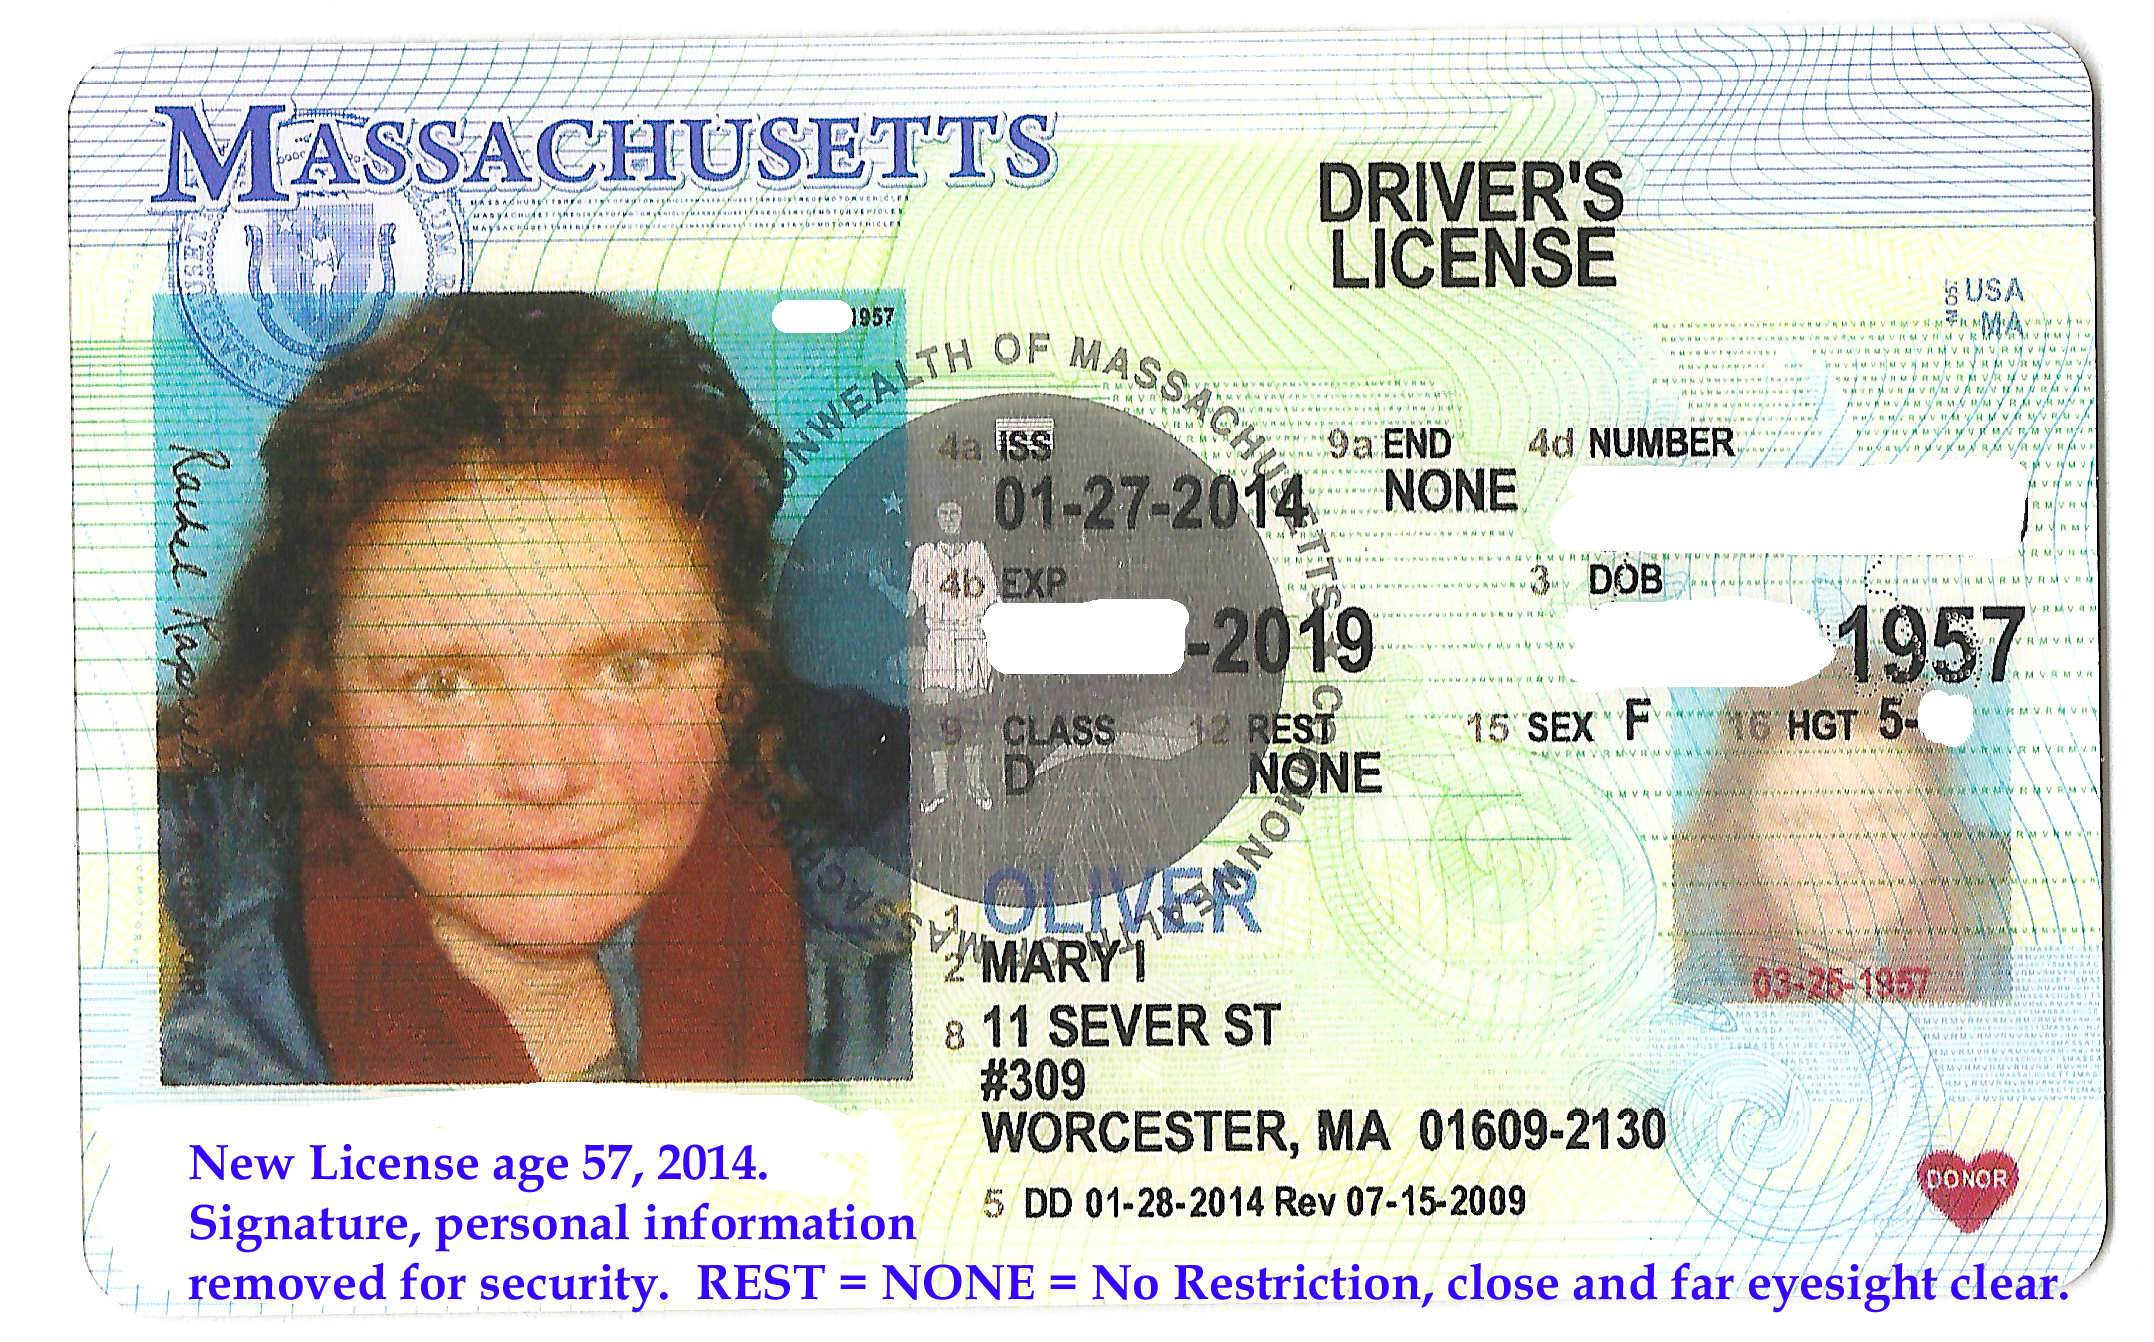 New License Feb., 2014. Age 57